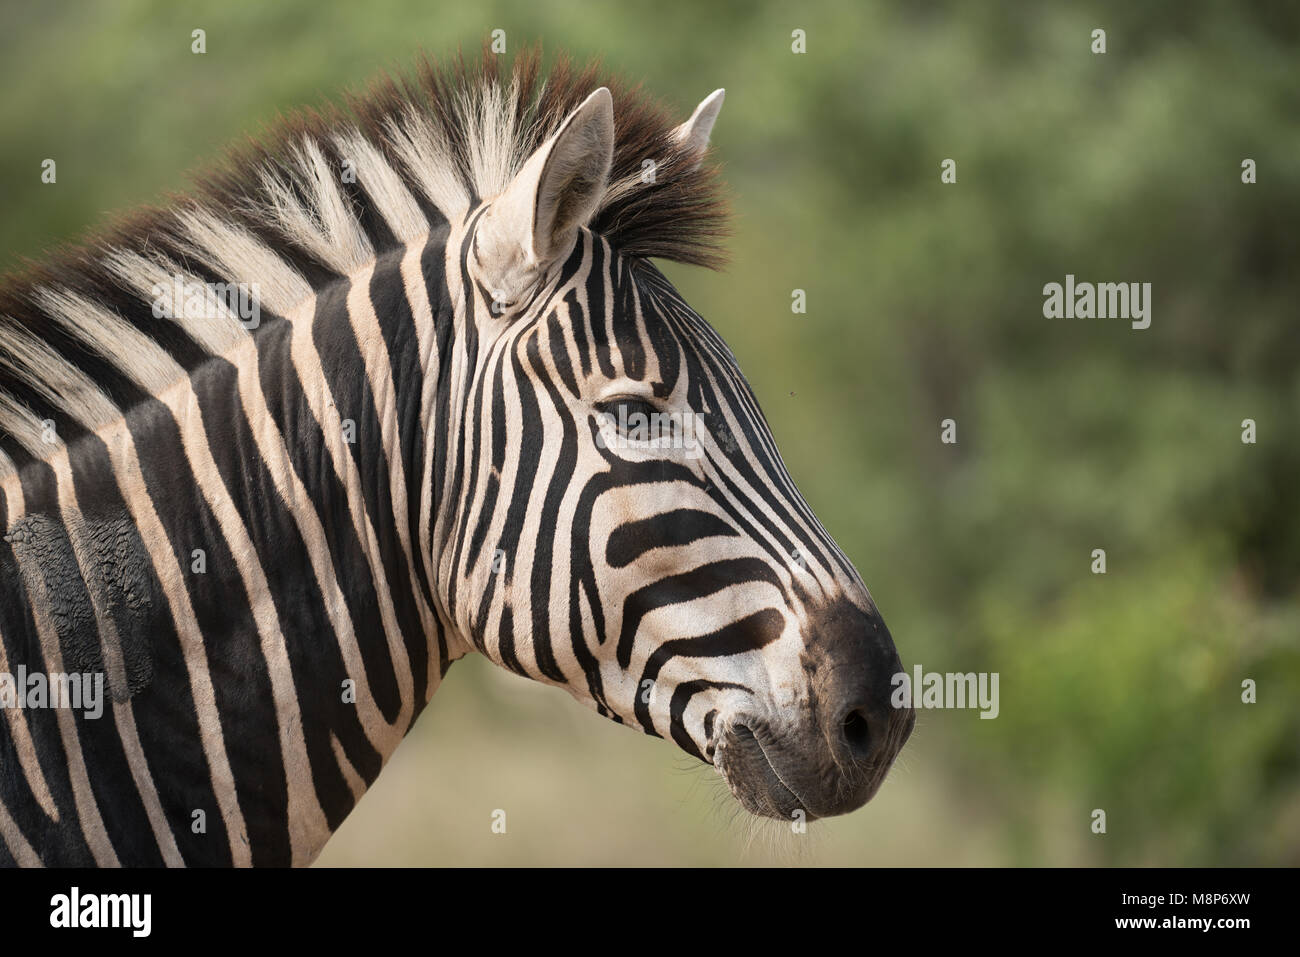 Portrait of a Burchell's Zebra - Stock Image